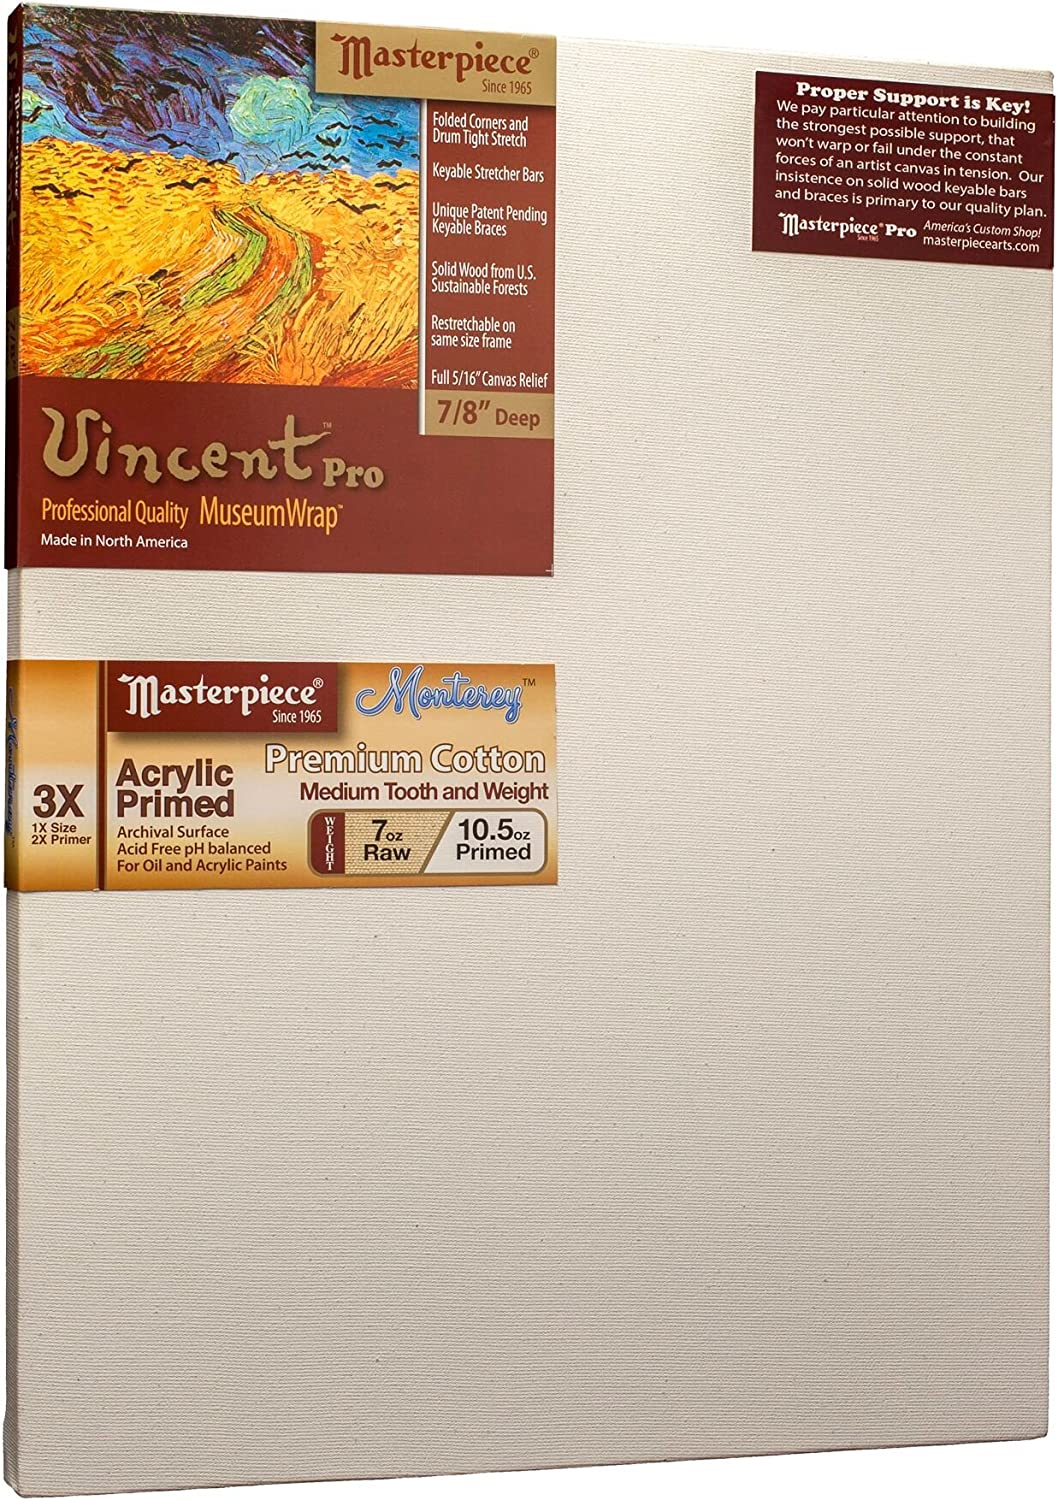 Monterey Most Popular Cotton 10.5oz 3X Masterpiece Artist Canvas VM-3248 Vincent Pro 7//8 Deep 32 x 48